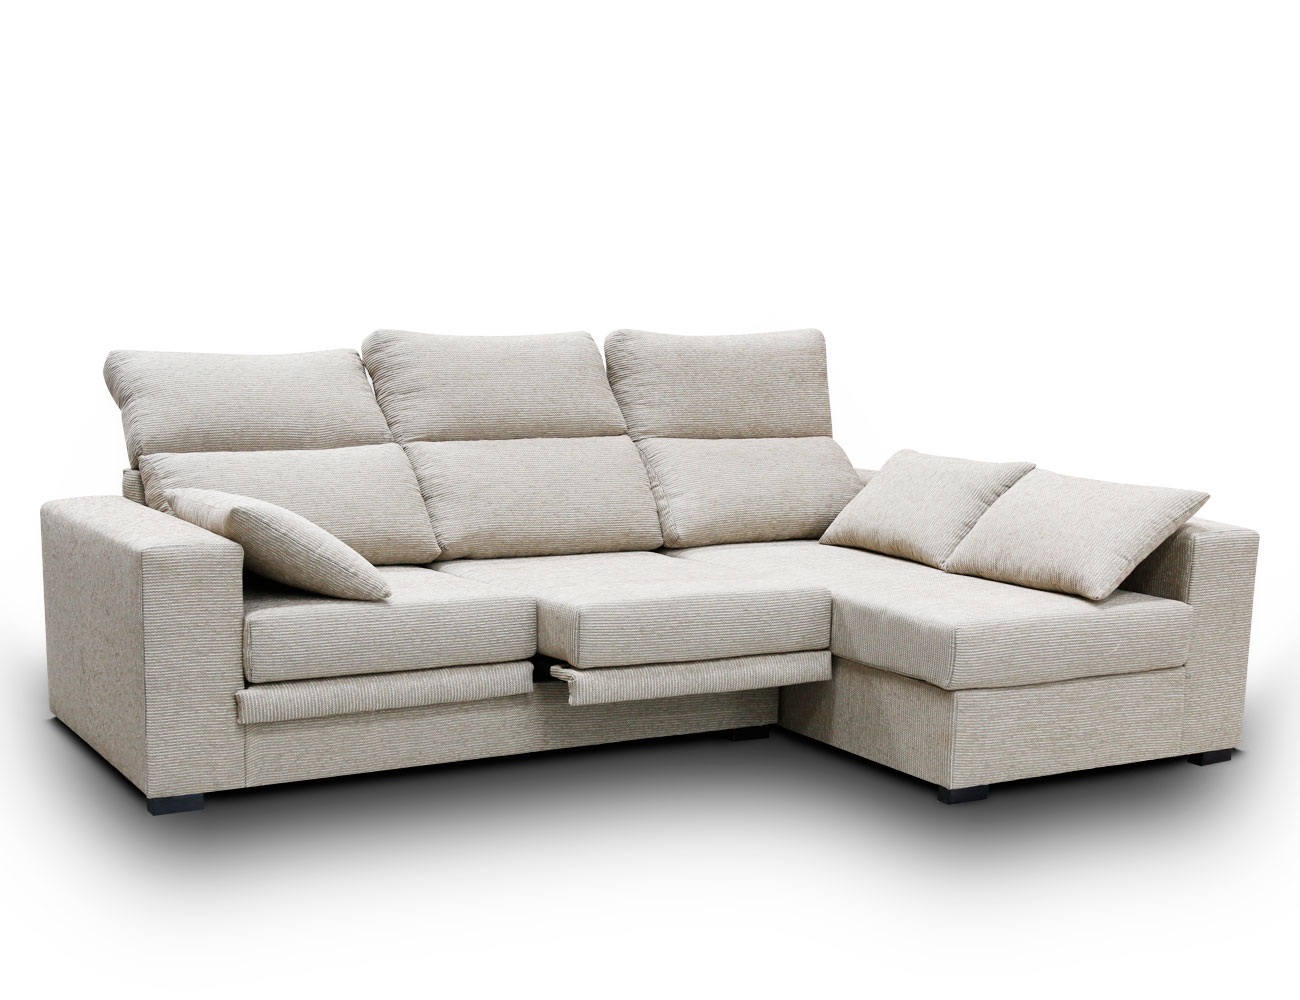 Sofa chaiselongue barato pardo